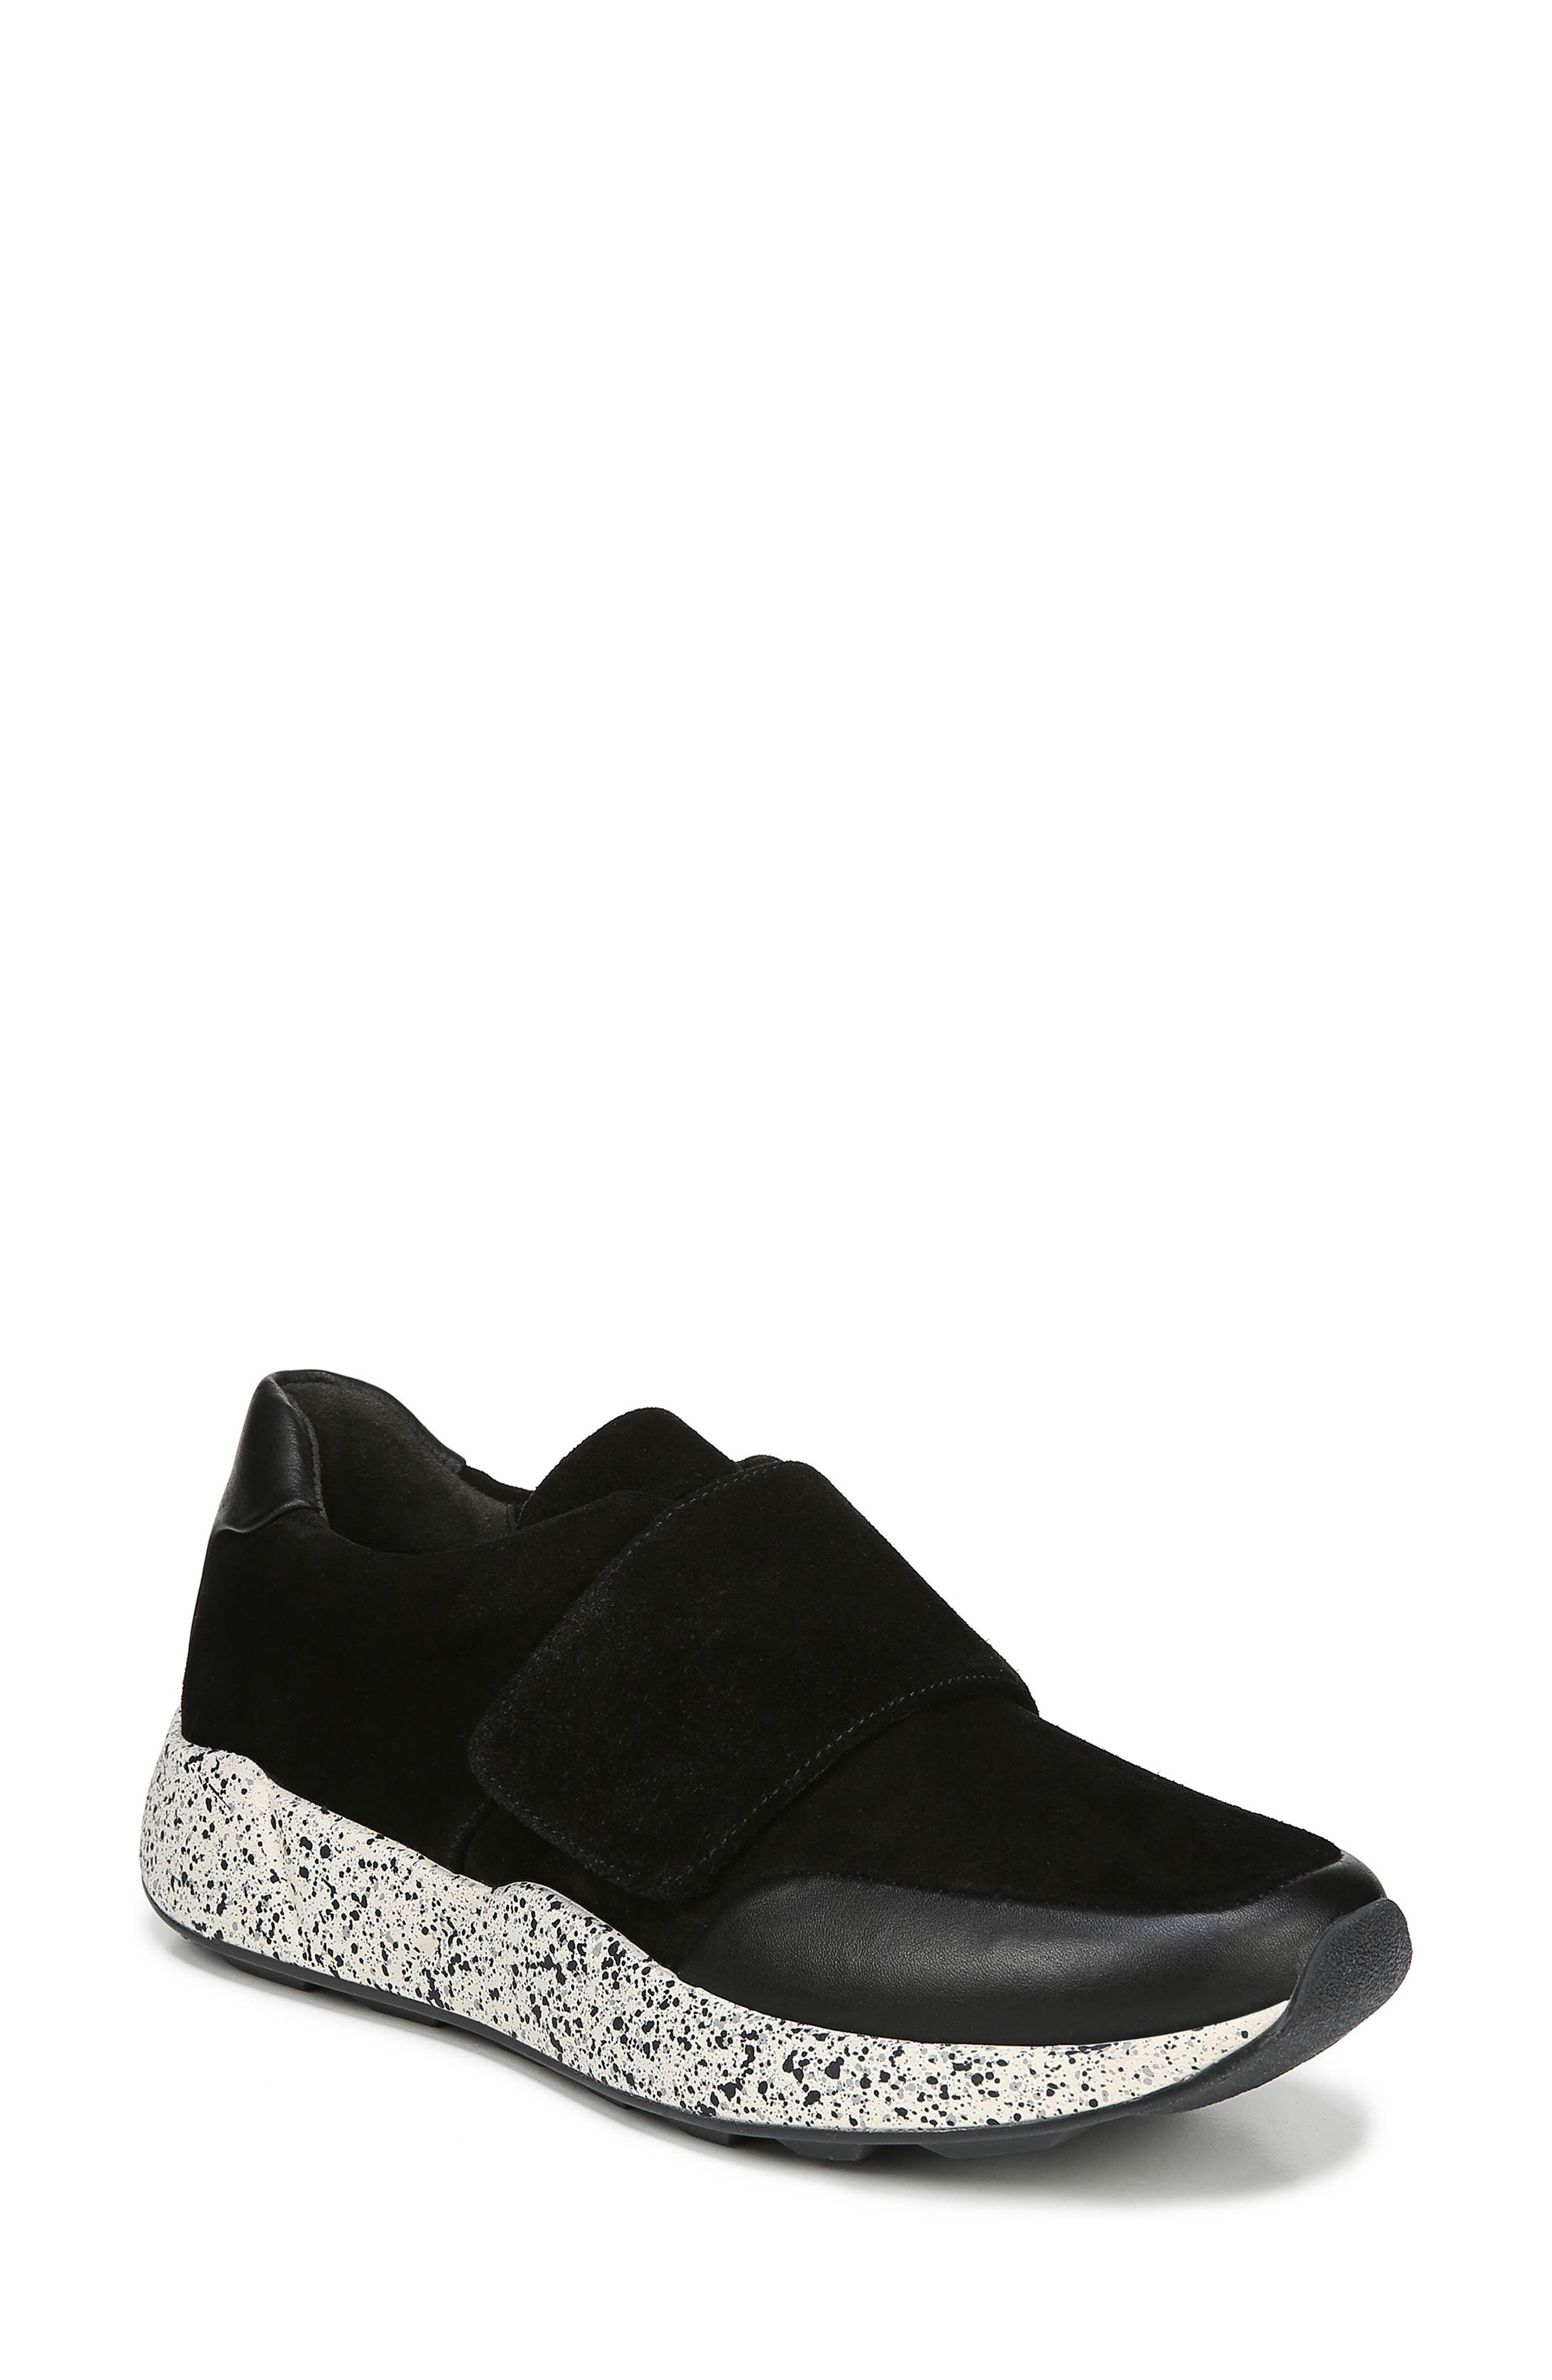 Gage Sneaker,                             Main thumbnail 1, color,                             BLACK COCO